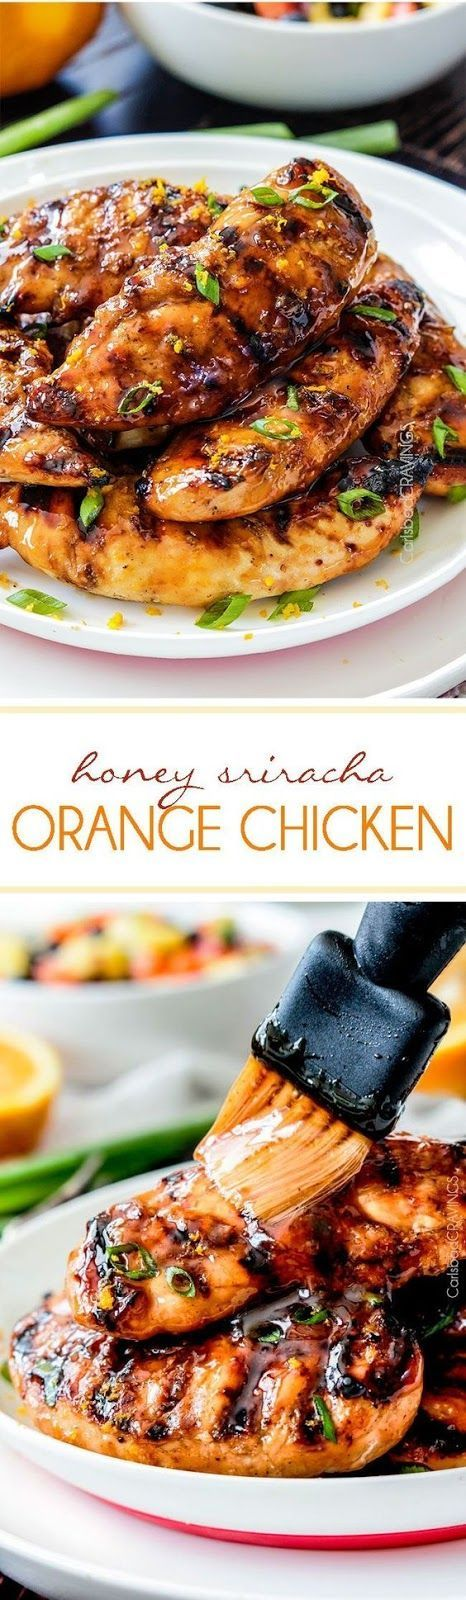 An obsessive worthy sticky, sweet heat Grilled Honey Sriracha Orange Chicken that is guaranteed to be a family favorite from the first bite! #honey #sriracha #orange #chicken #howtocook #tutorialcooking